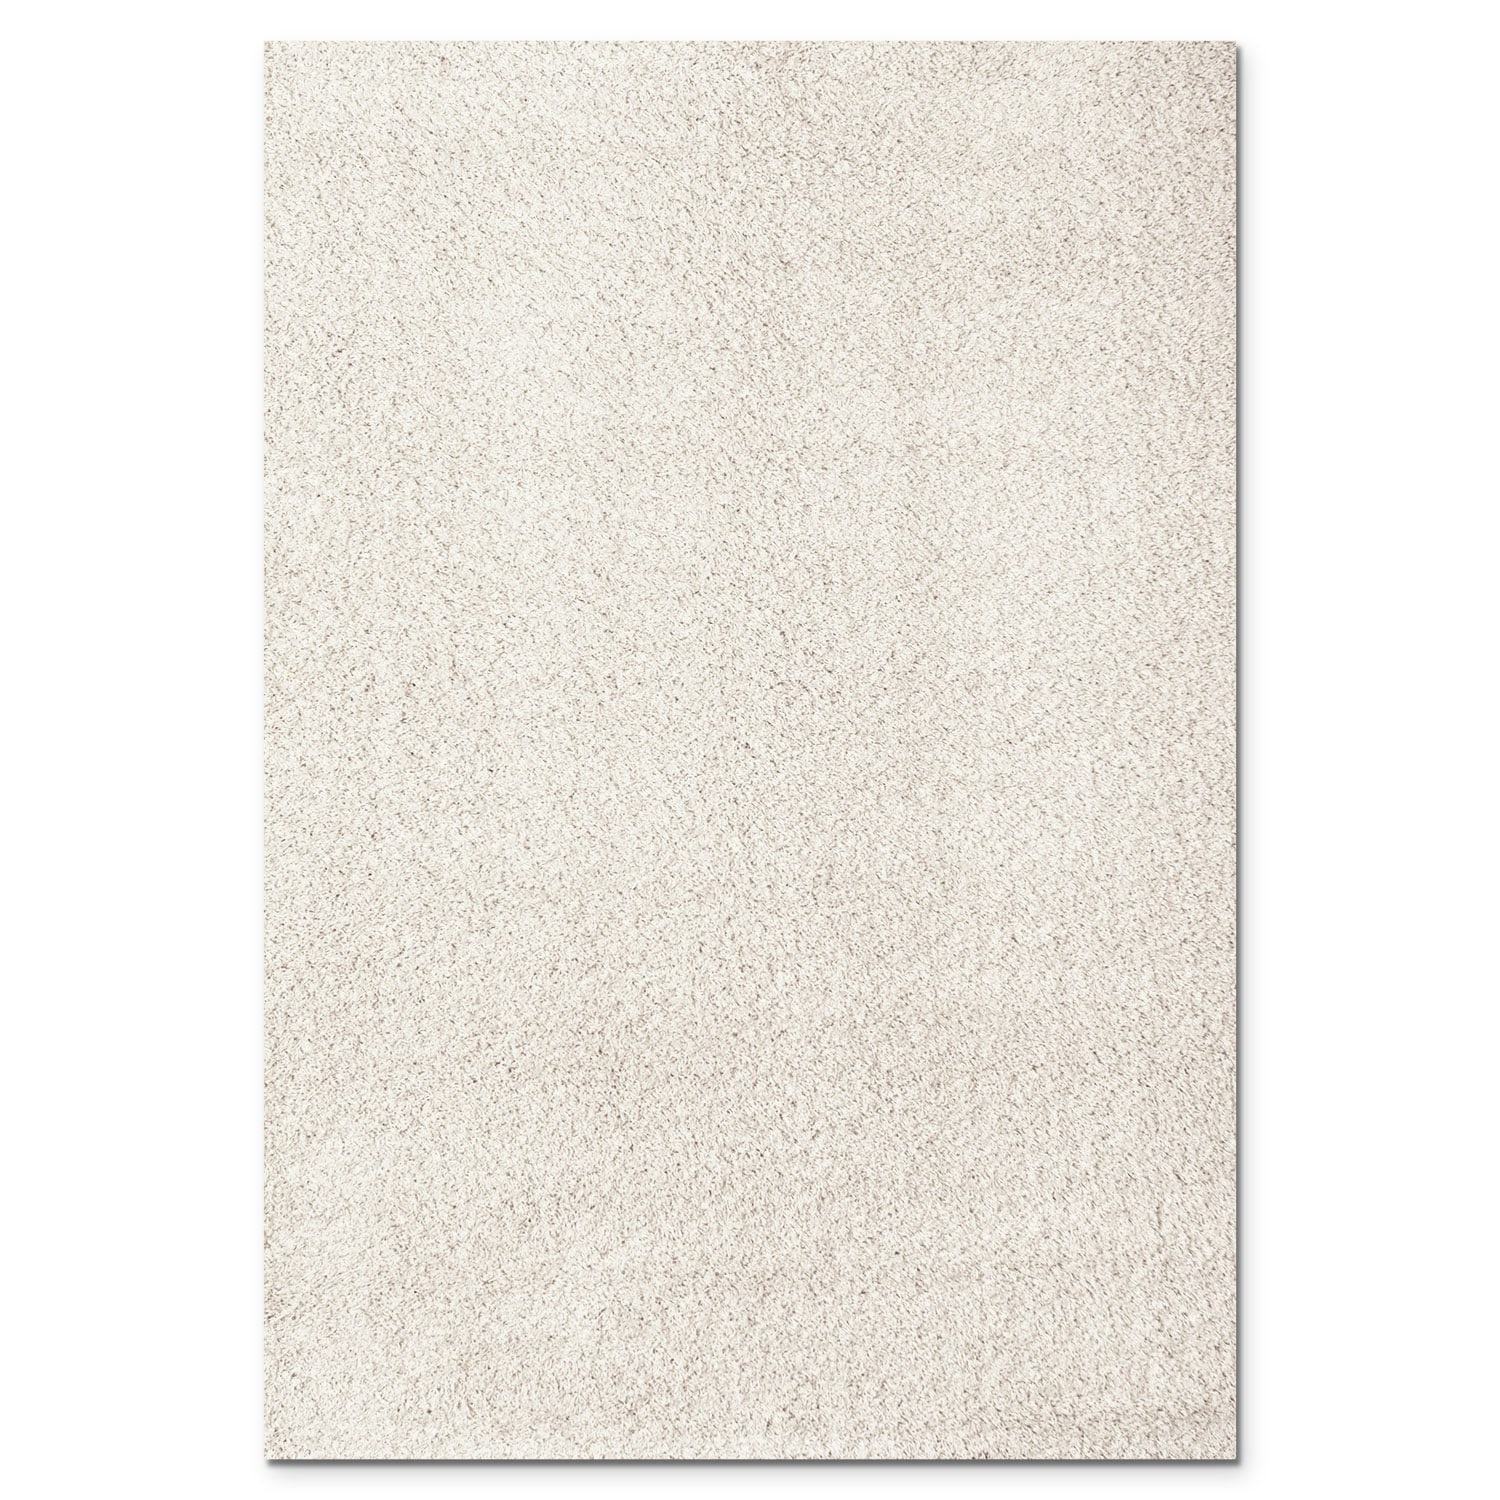 Rugs - Domino White Shag Area Rug (8' x 10')